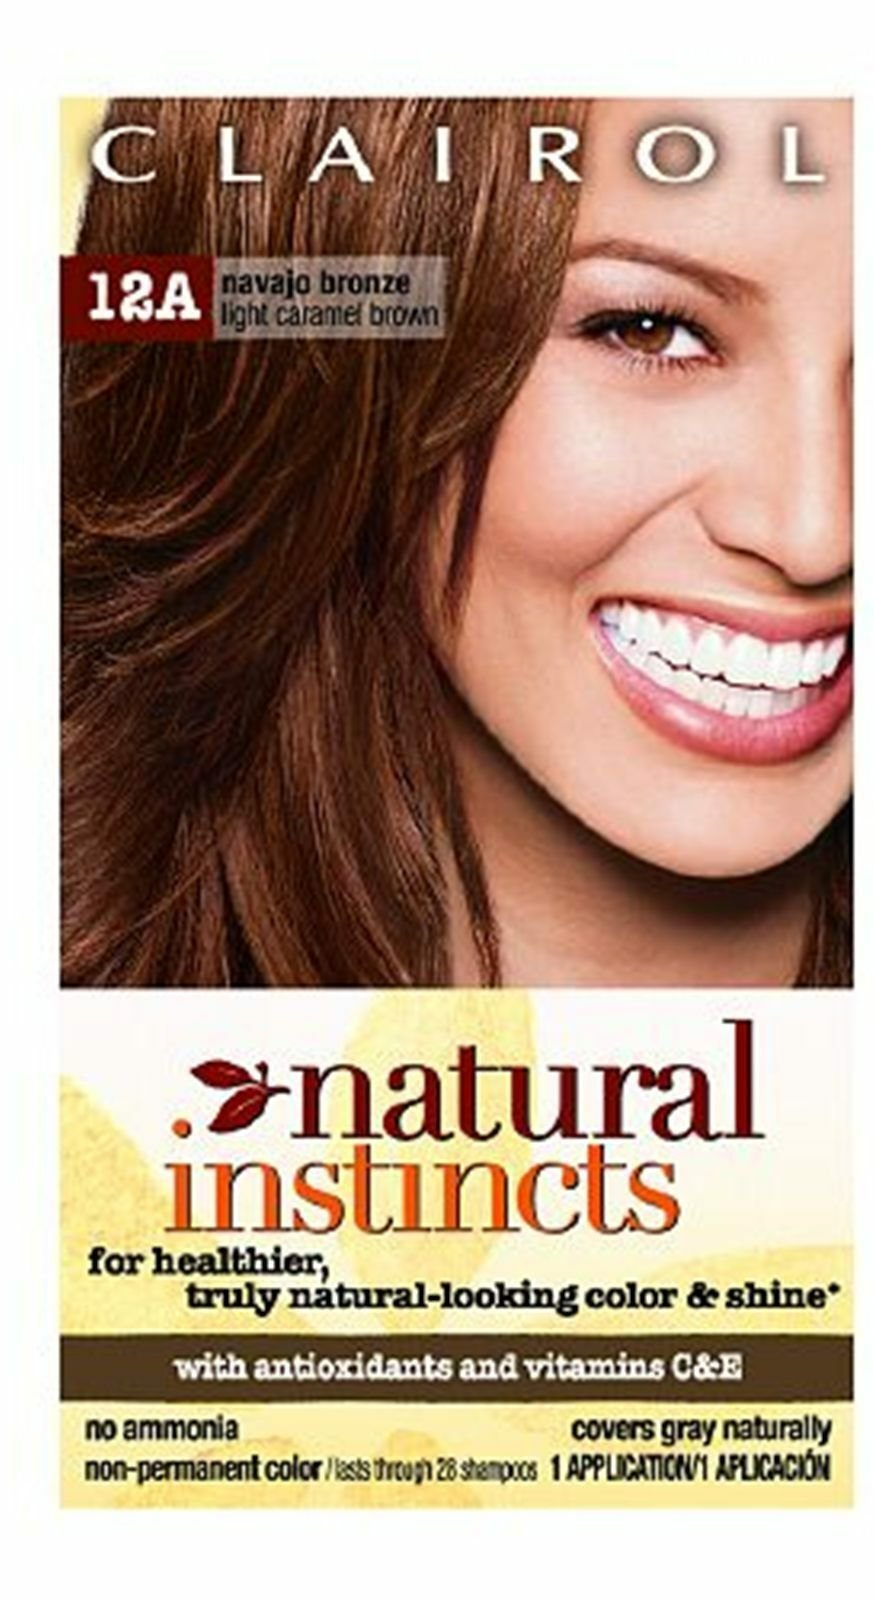 The Best Clairol 12A Navajo Bronze Light Caramel Brown Haircolor Ebay Pictures